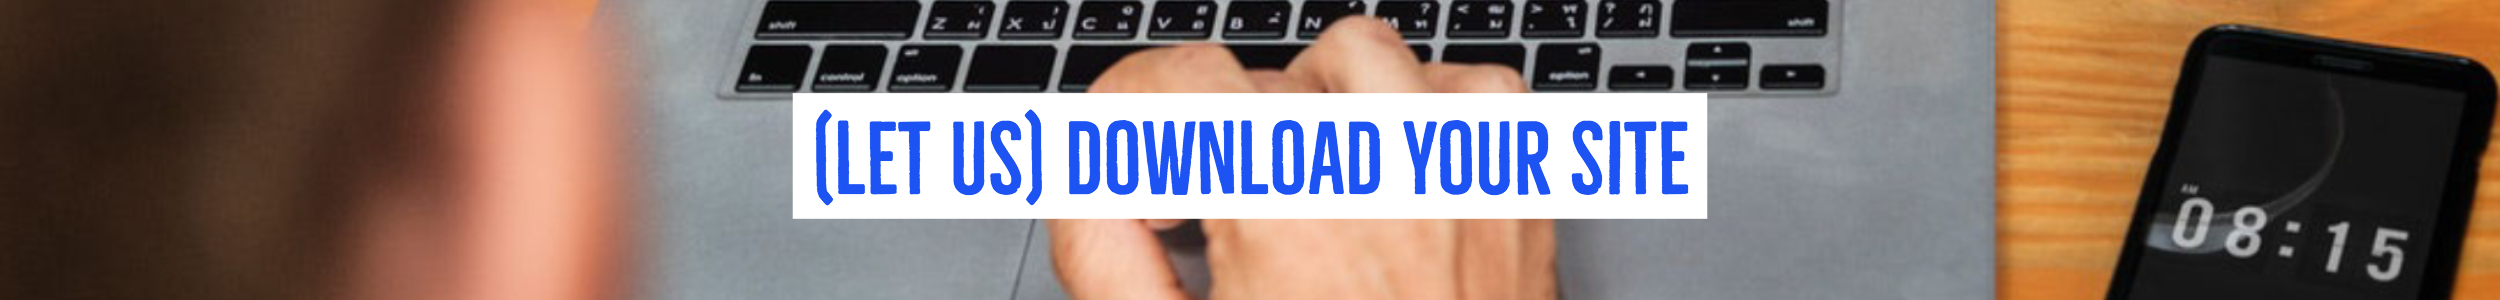 Want us to download your whole site? We can do this for you!